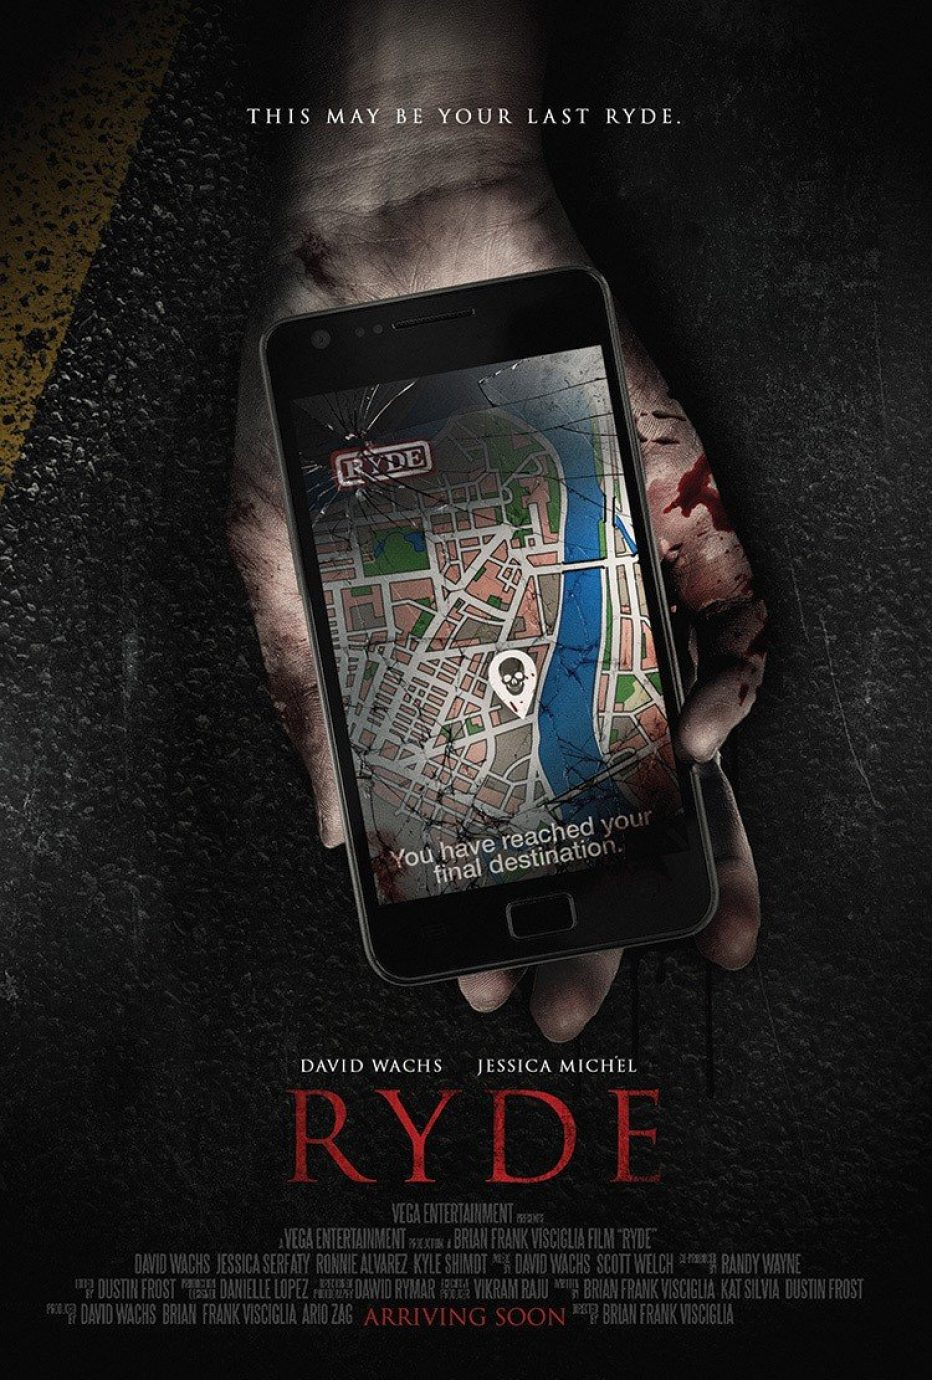 RYDE Available To Watch on Digital Download From 21st August